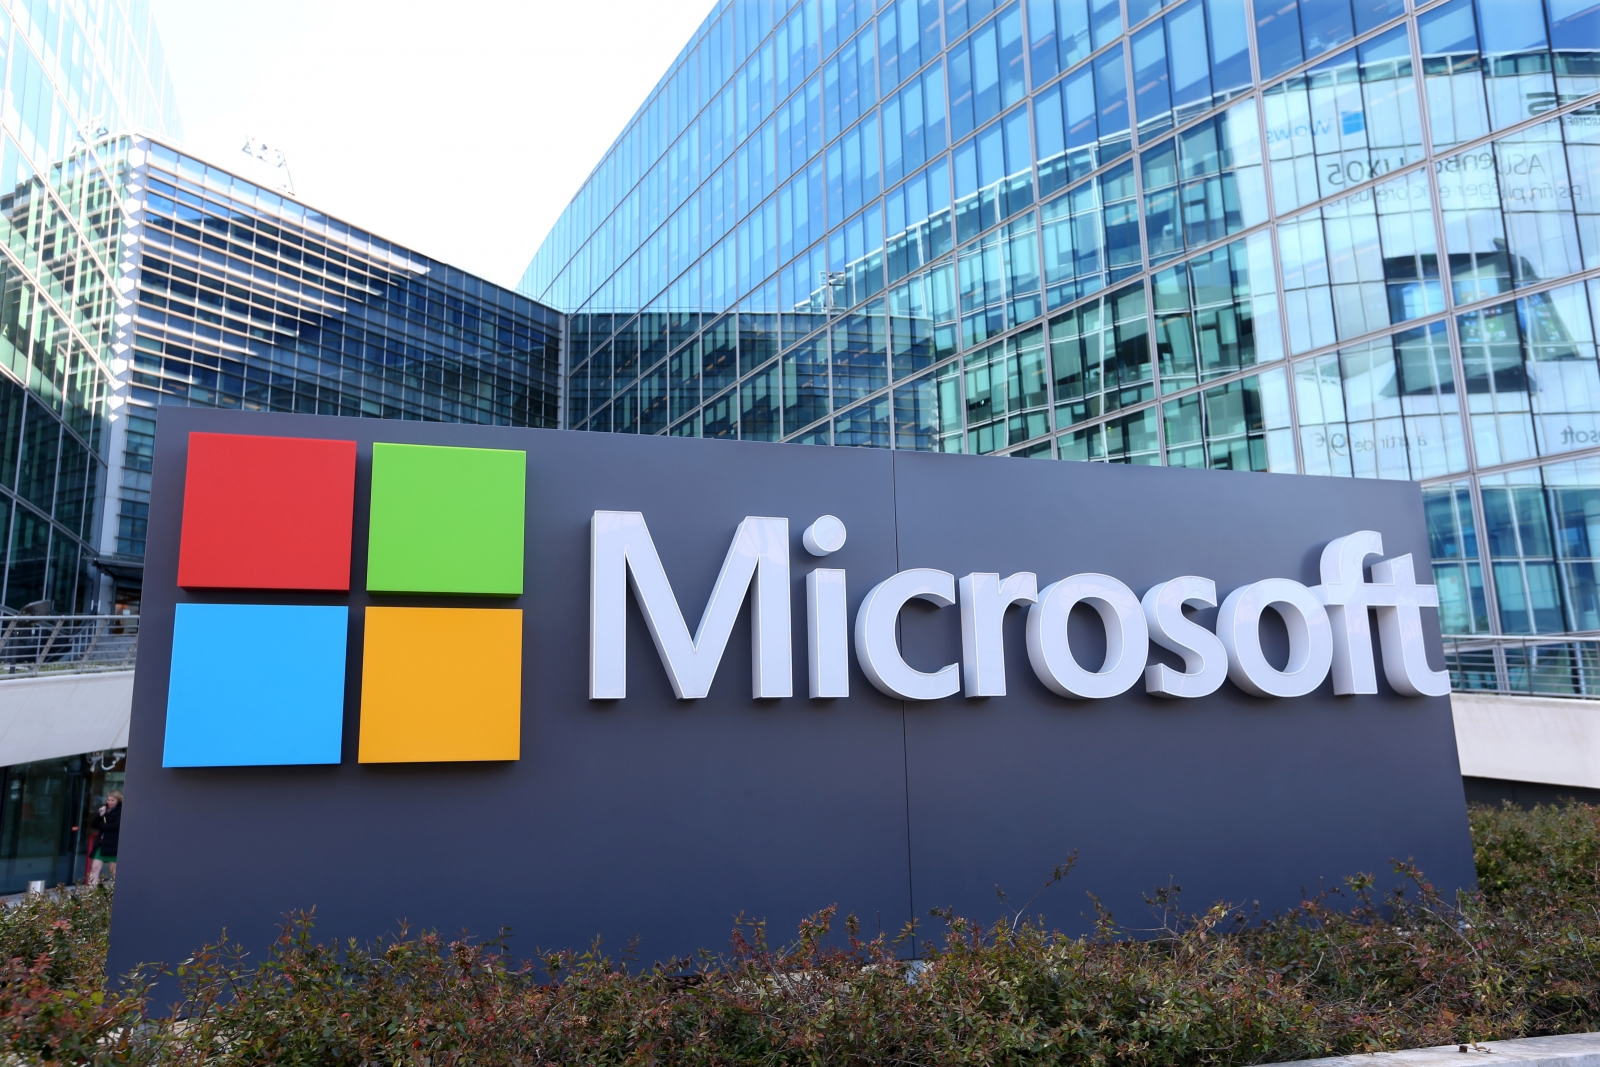 Microsoft announces addition to board and quarterly dividend